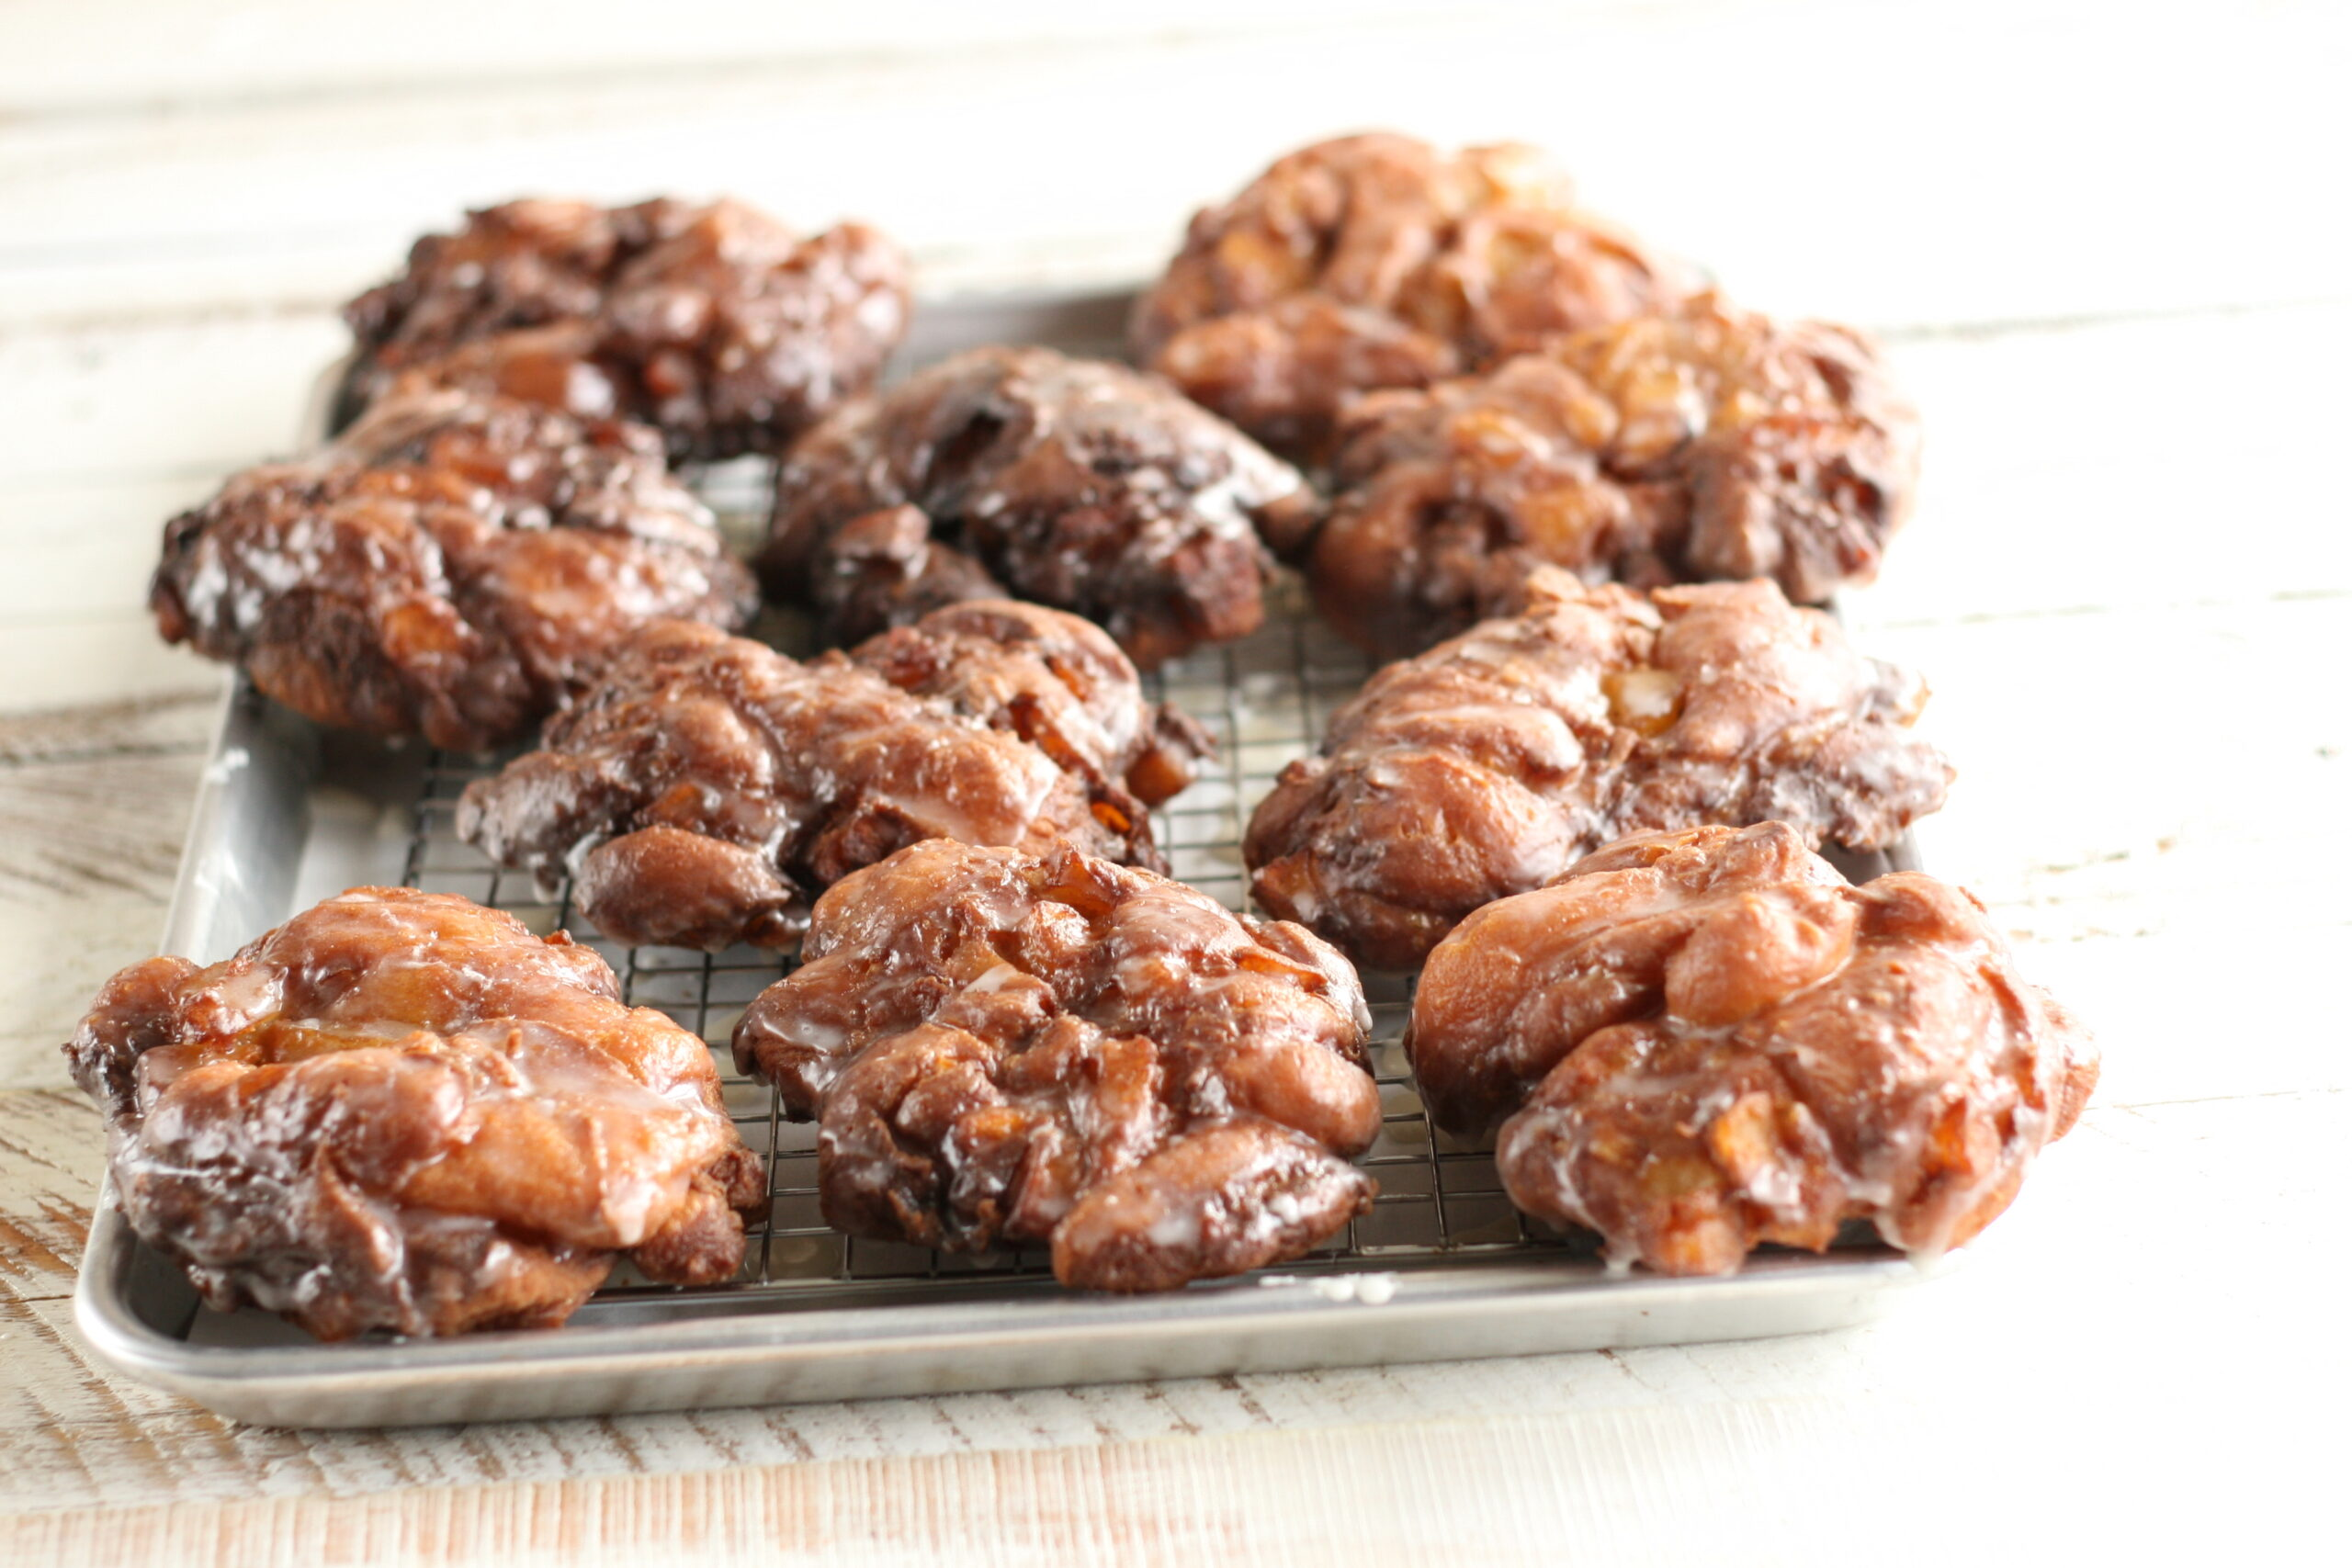 Apple Fritters with a glaze sitting on a sheet pan and baking rack.